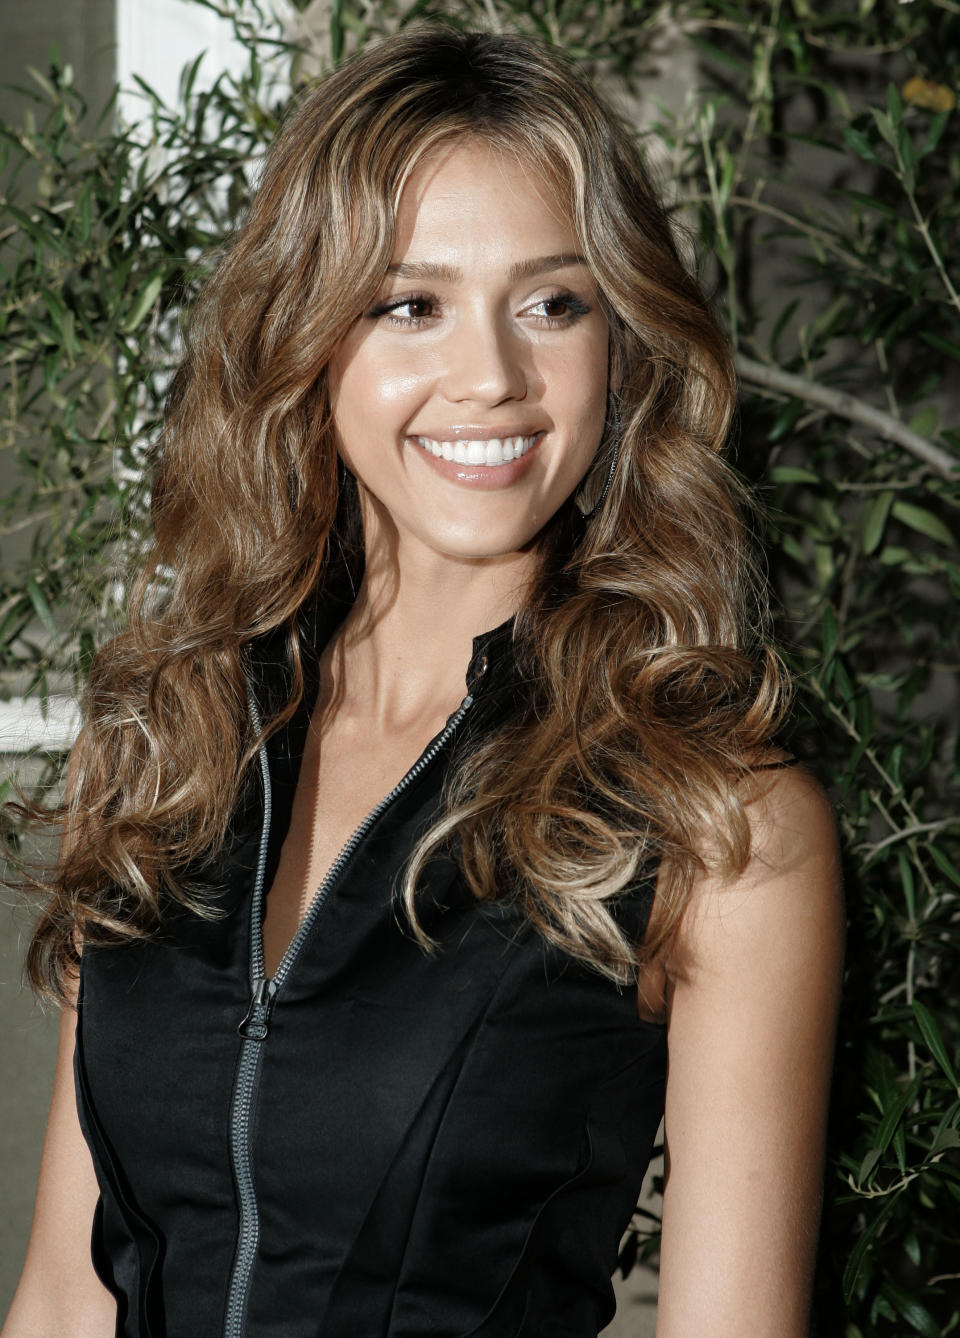 Actress Jessica Alba arrives at Elle magazine's 14th Annual Women in Hollywood tribute in Los Angeles Monday, Oct. 15, 2007. (AP Photo/Kevork Djansezian)